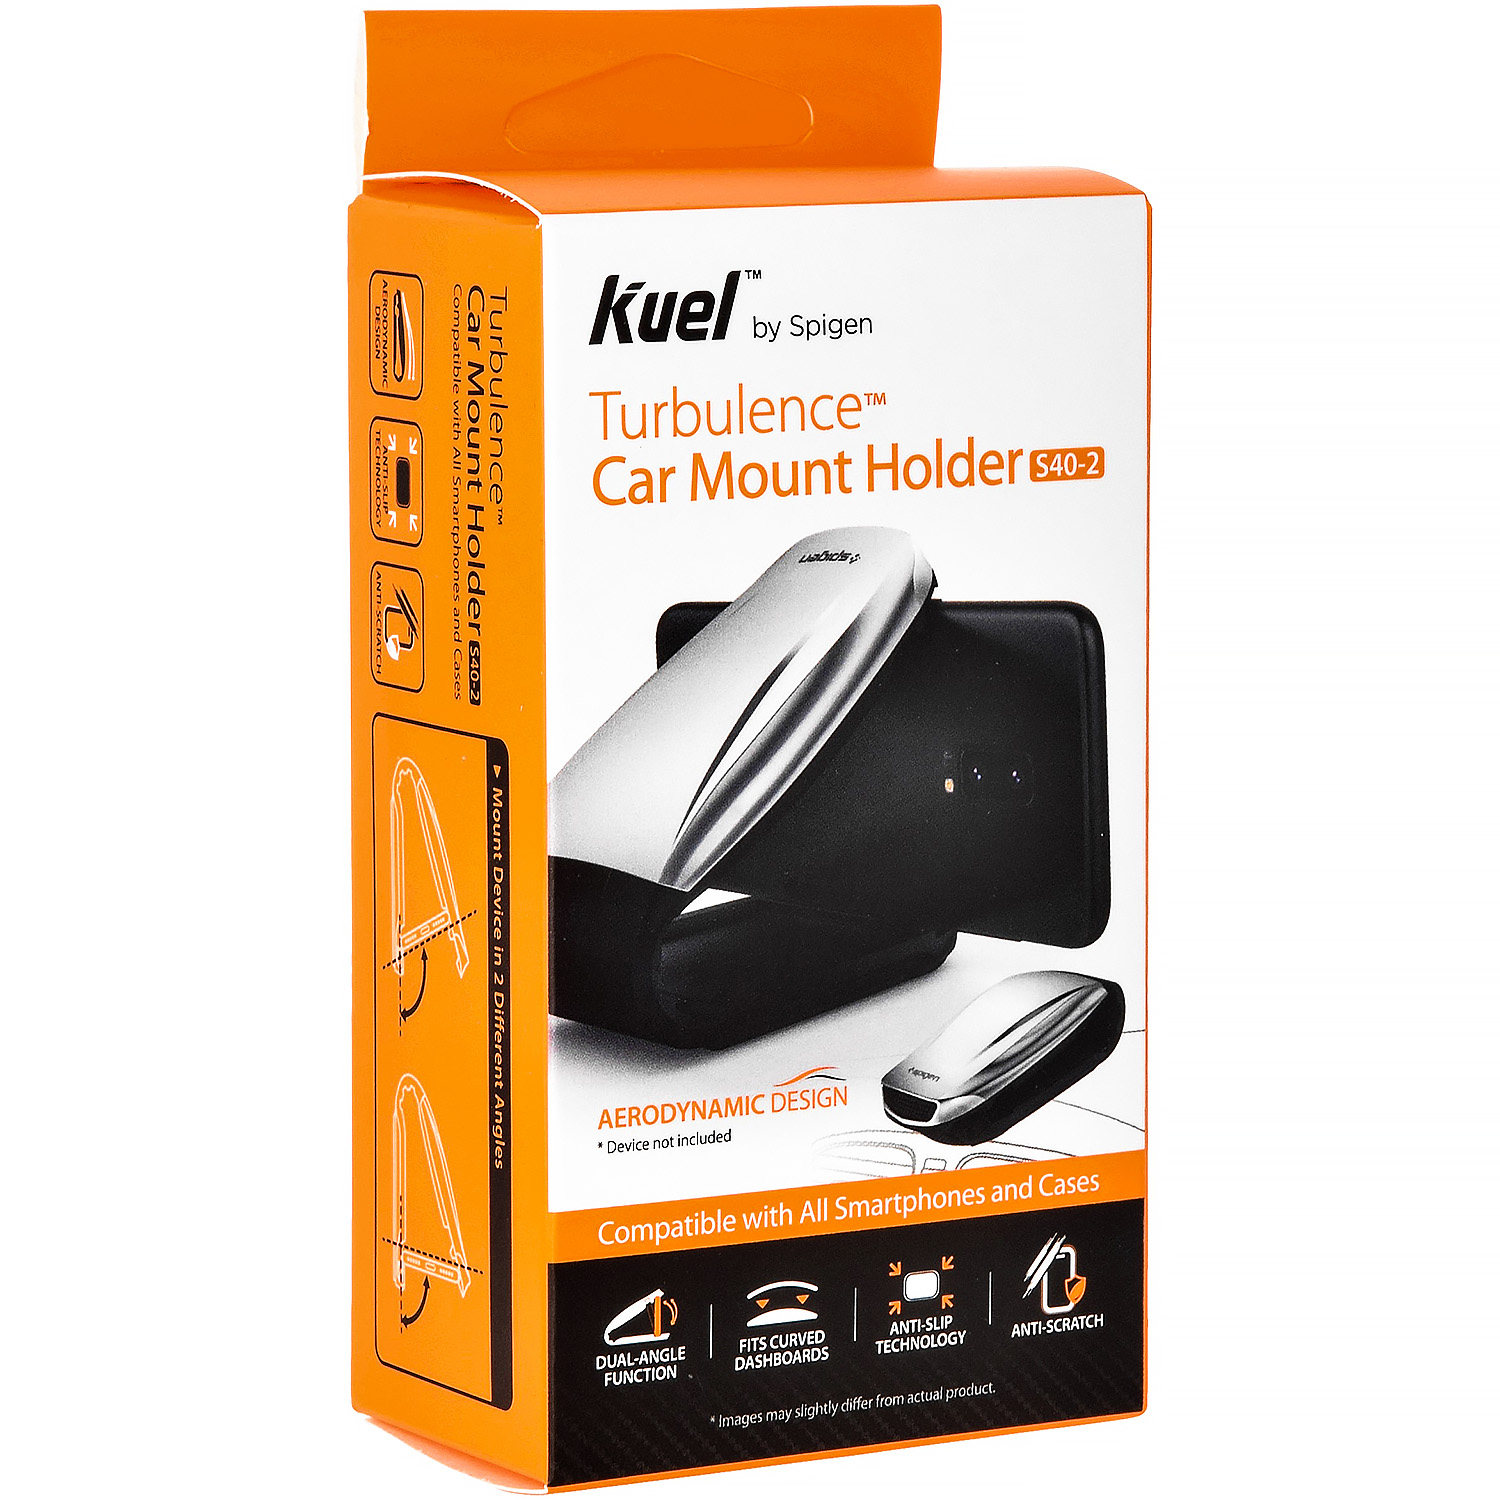 Uchwyt Spigen Turbulence Car MOunt Holder S40-2, srebrne